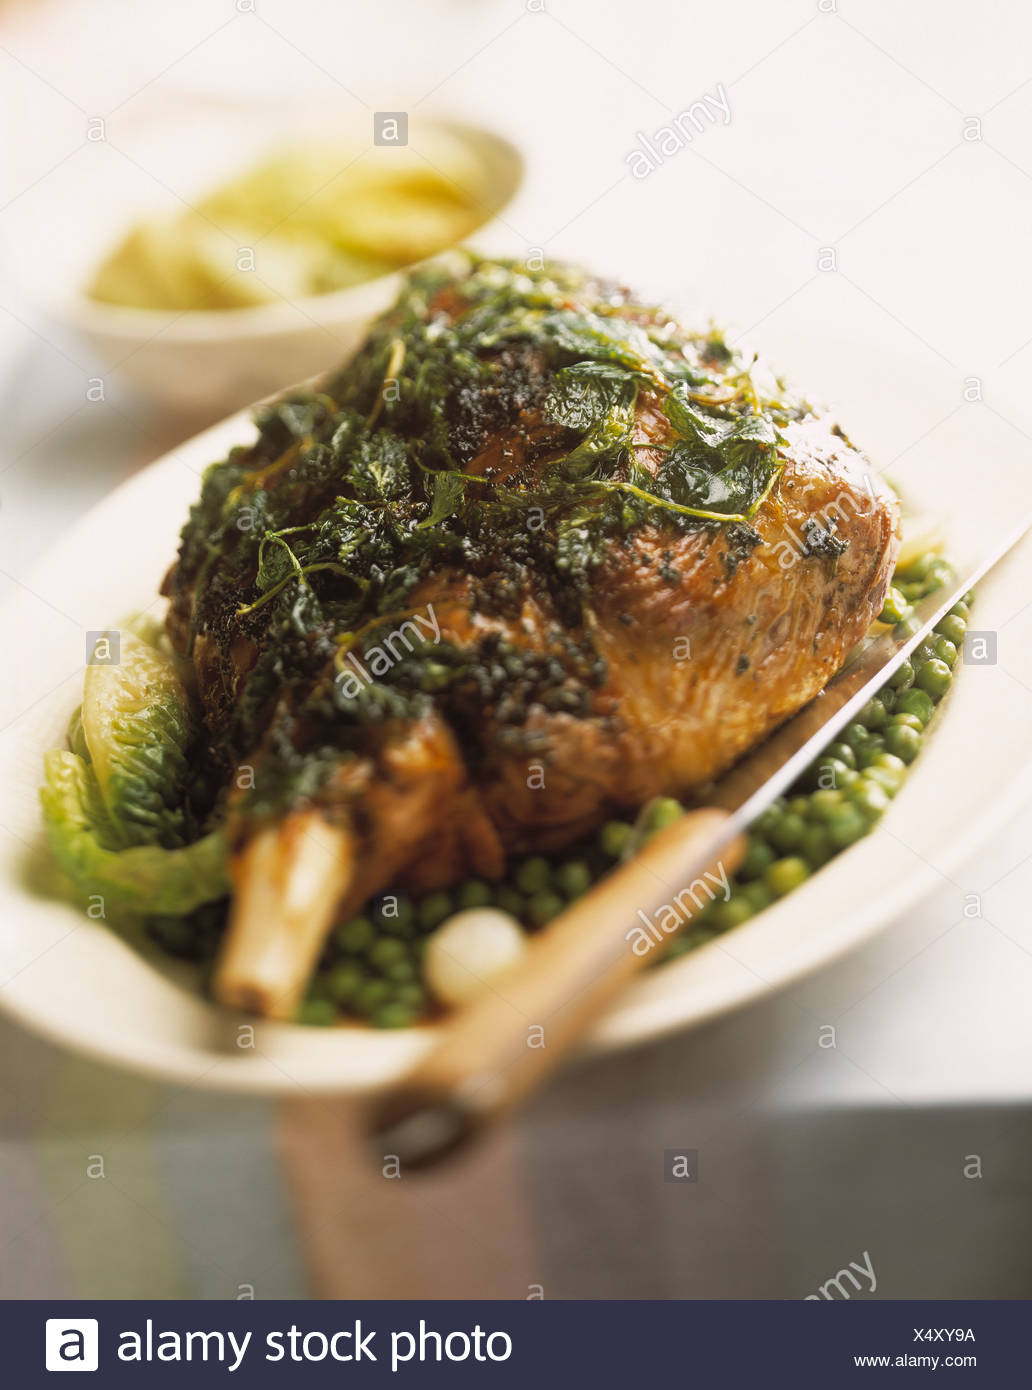 Leg of lamb with herbs, peas and lettuce - Stock Image